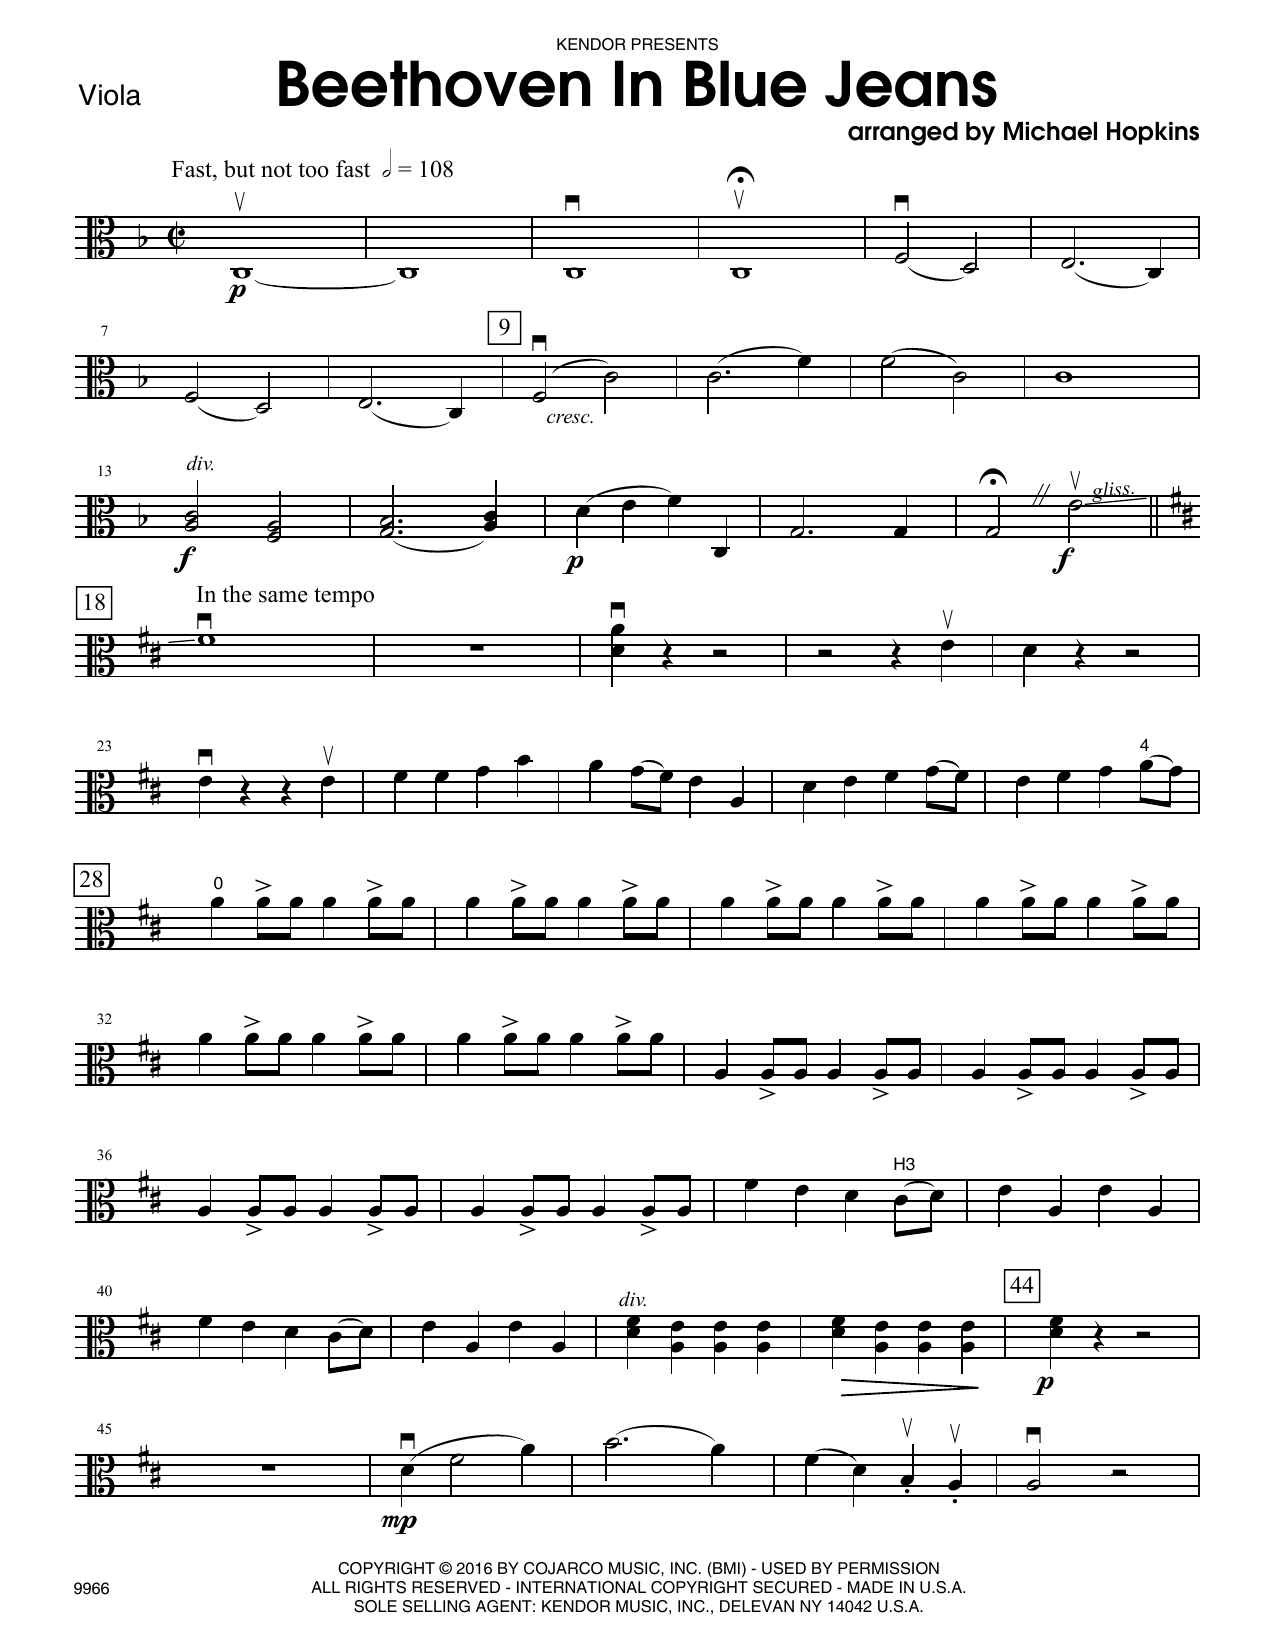 Beethoven In Blue Jeans - Viola Sheet Music